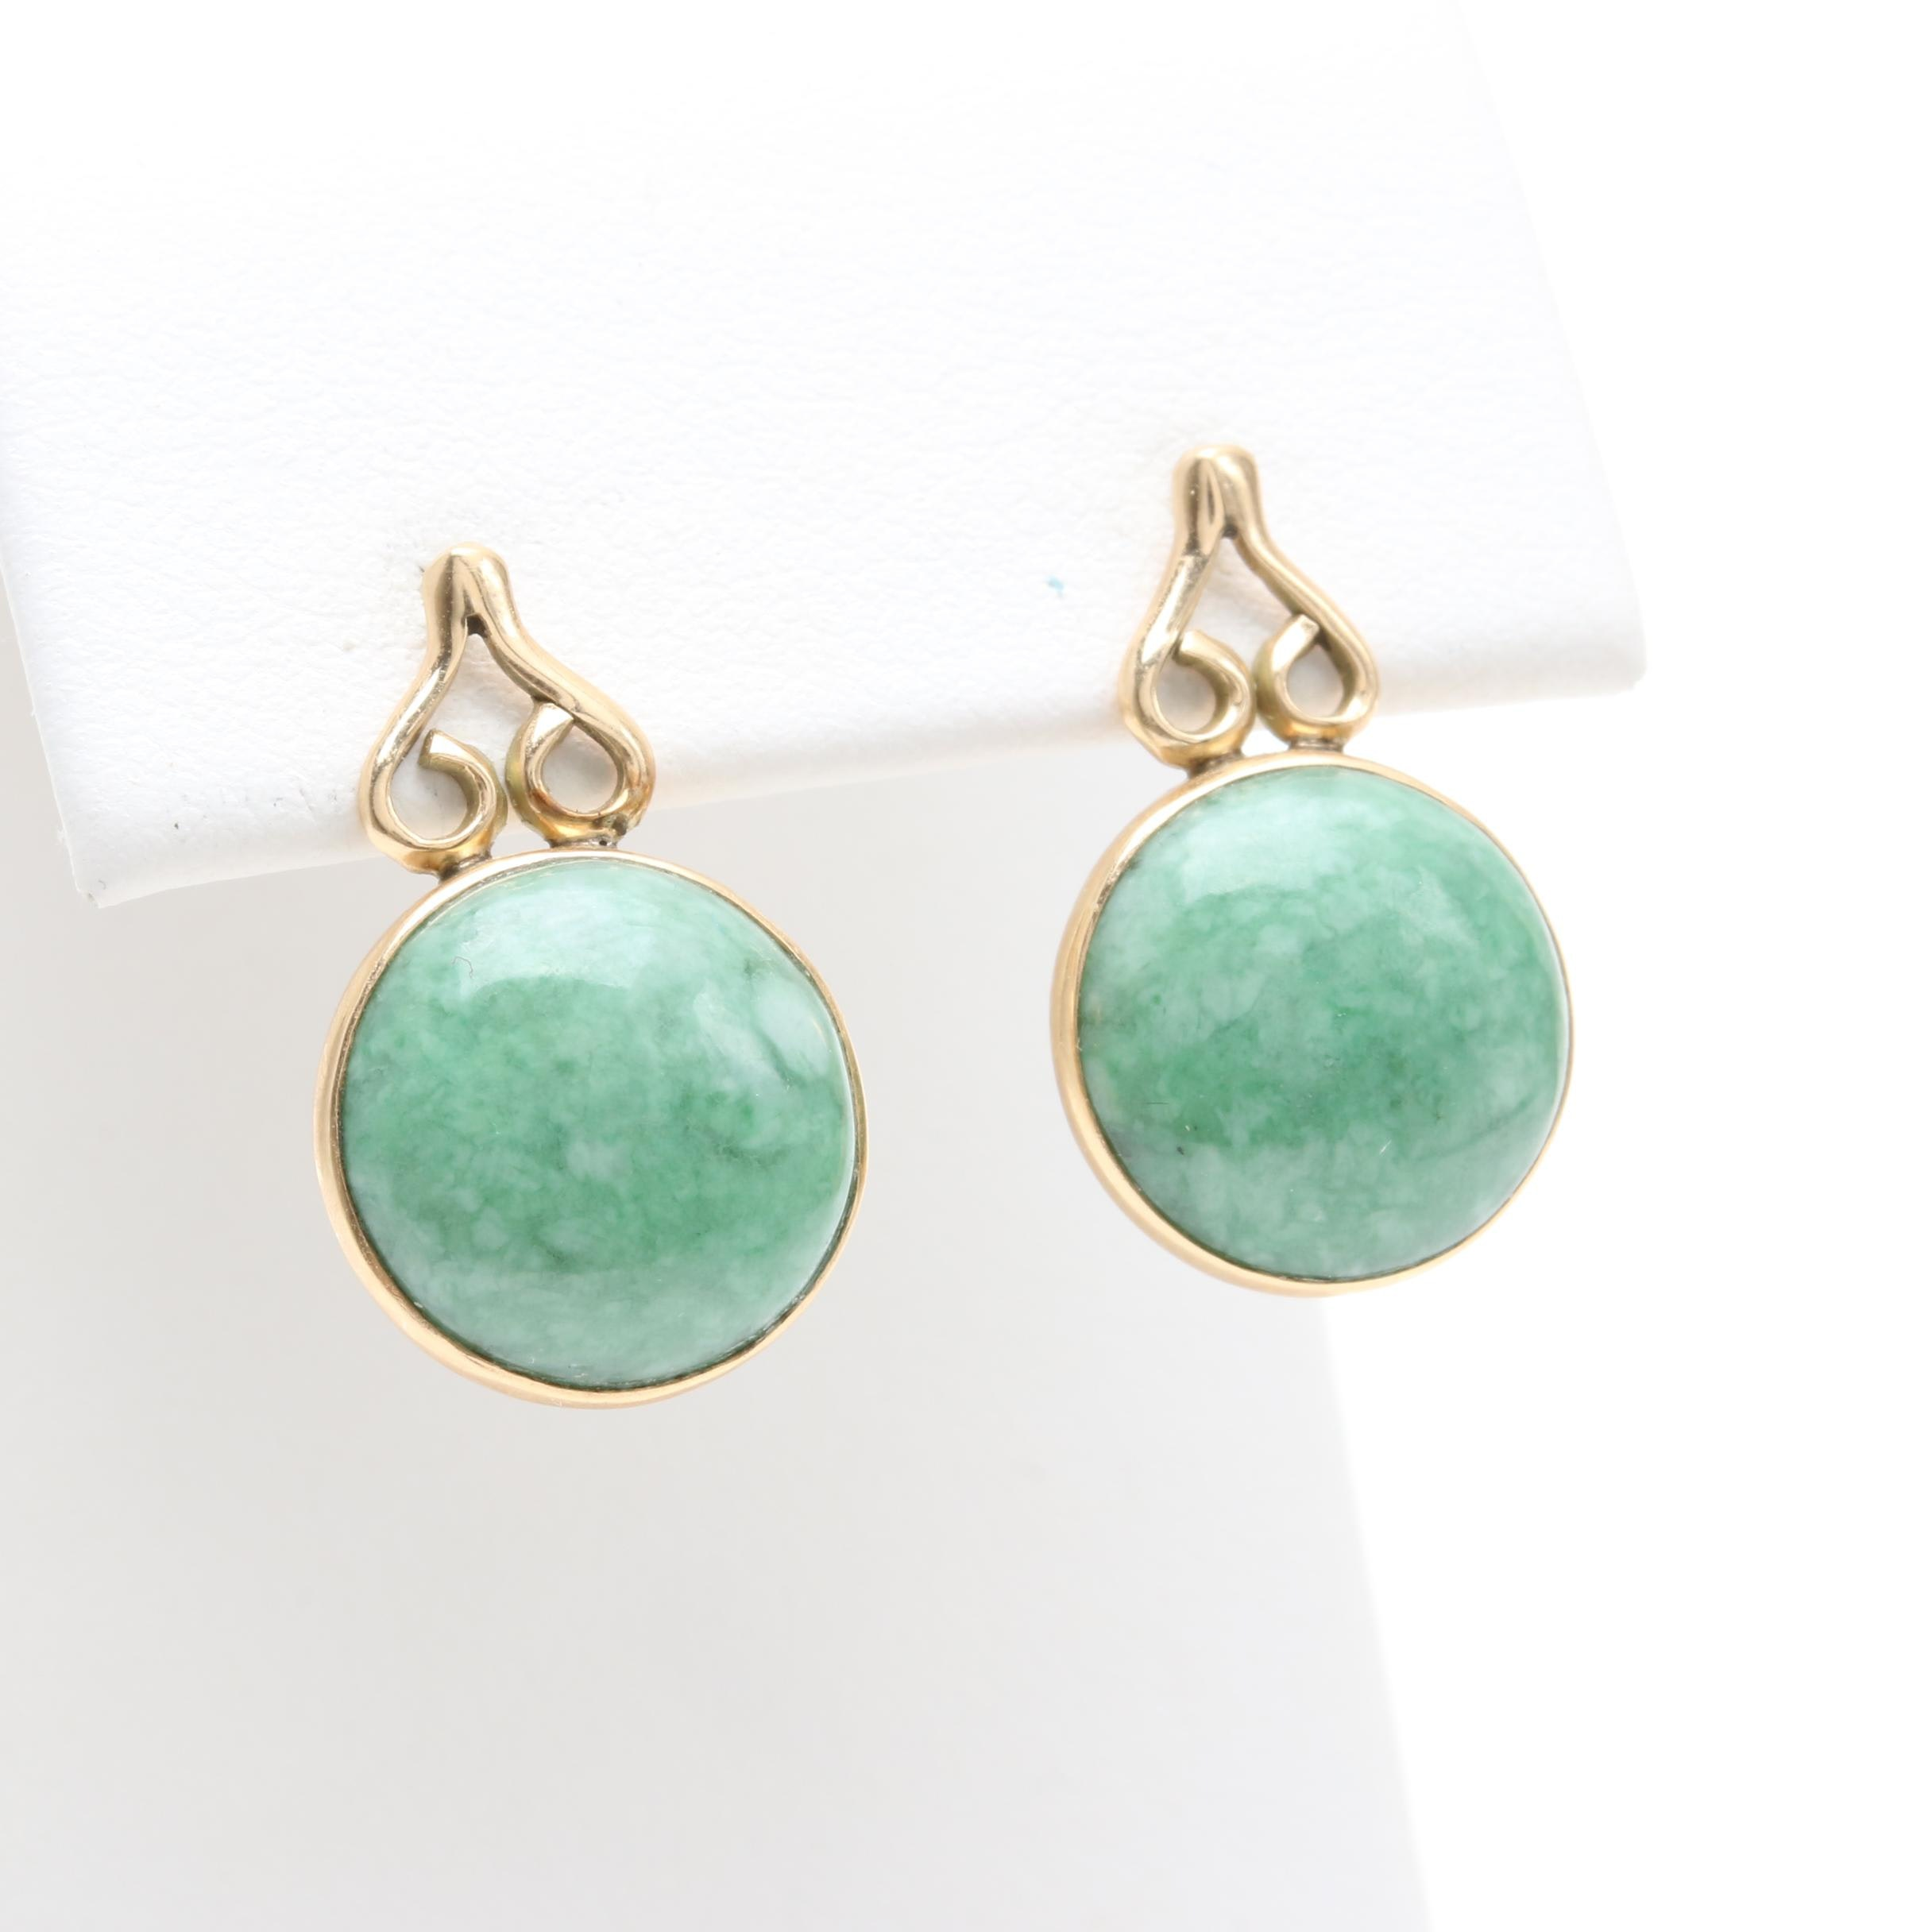 14K Yellow Gold Dyed Jadeite Earrings